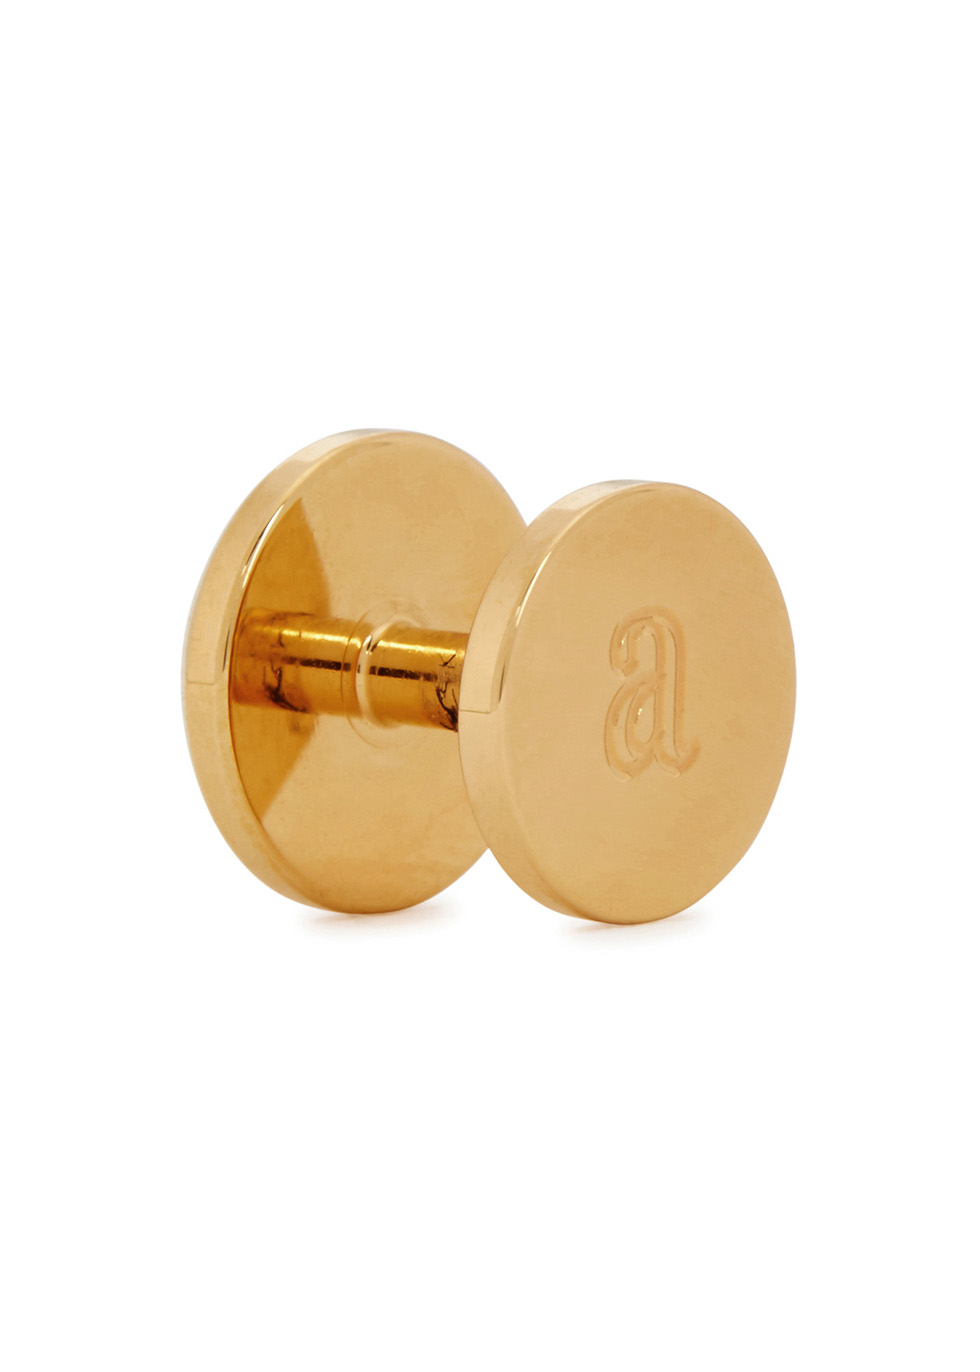 James 24kt gold-plated tuxedo studs - Alice Made This